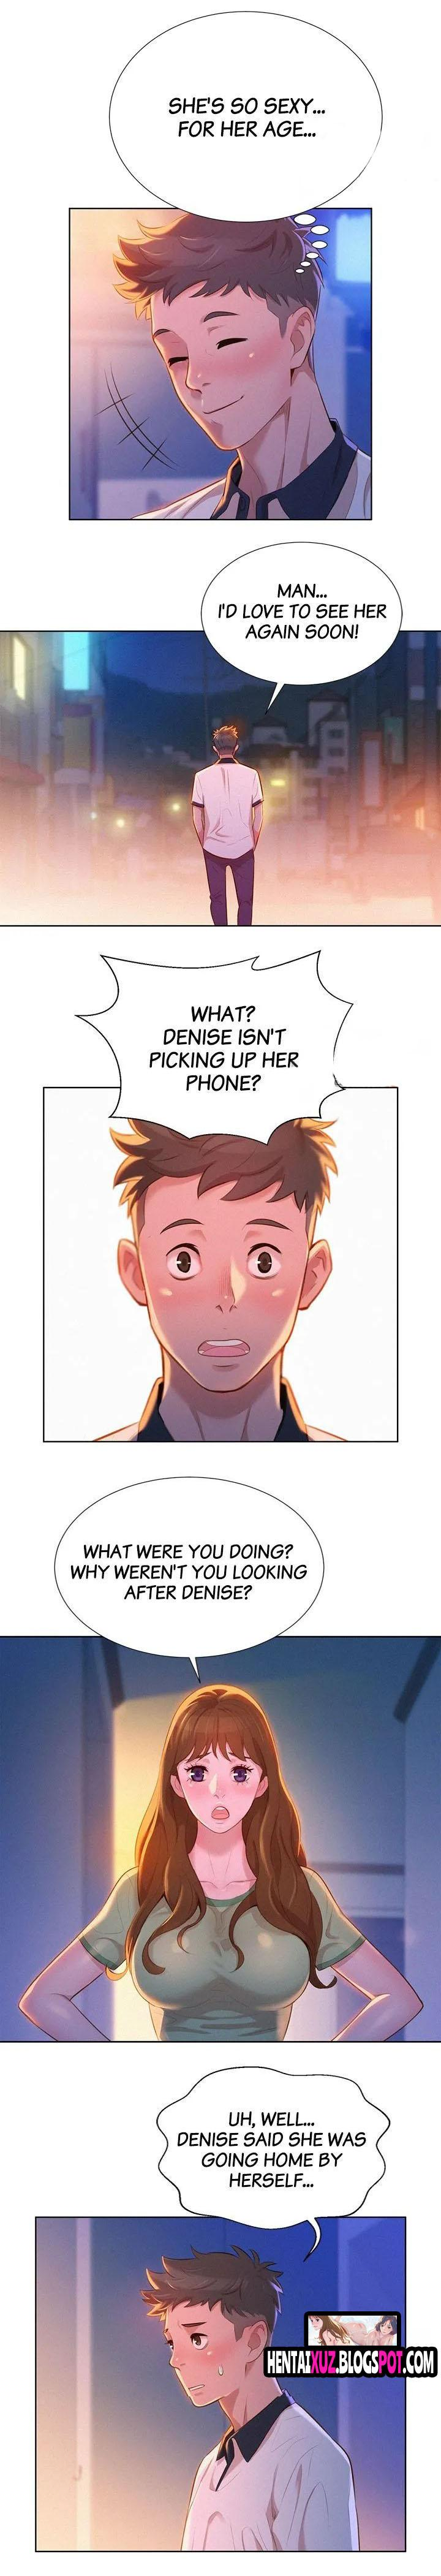 What do you Take me For? Ch.50/? 116